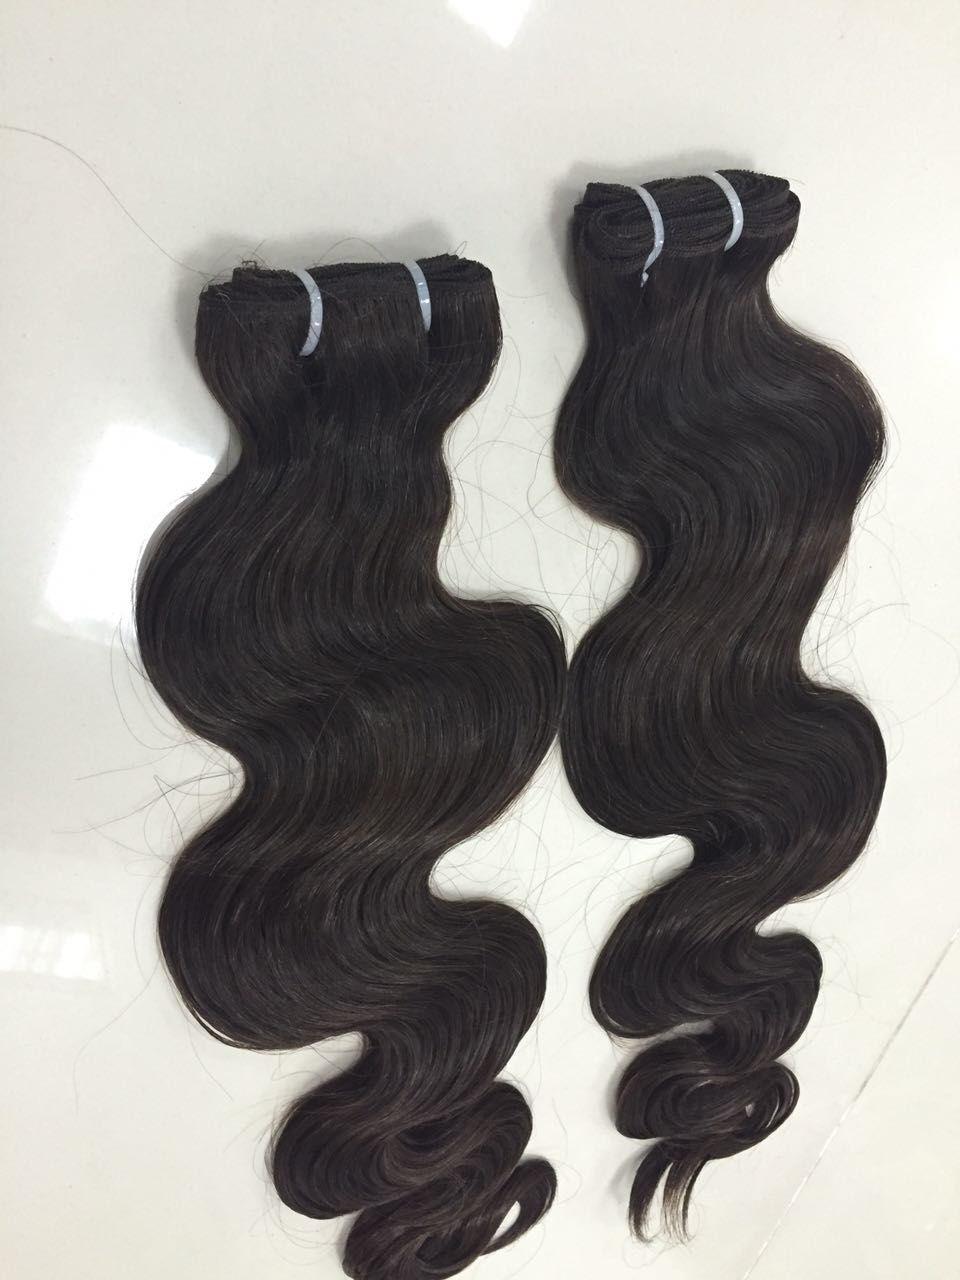 10 Inches Wavy Hair Weave